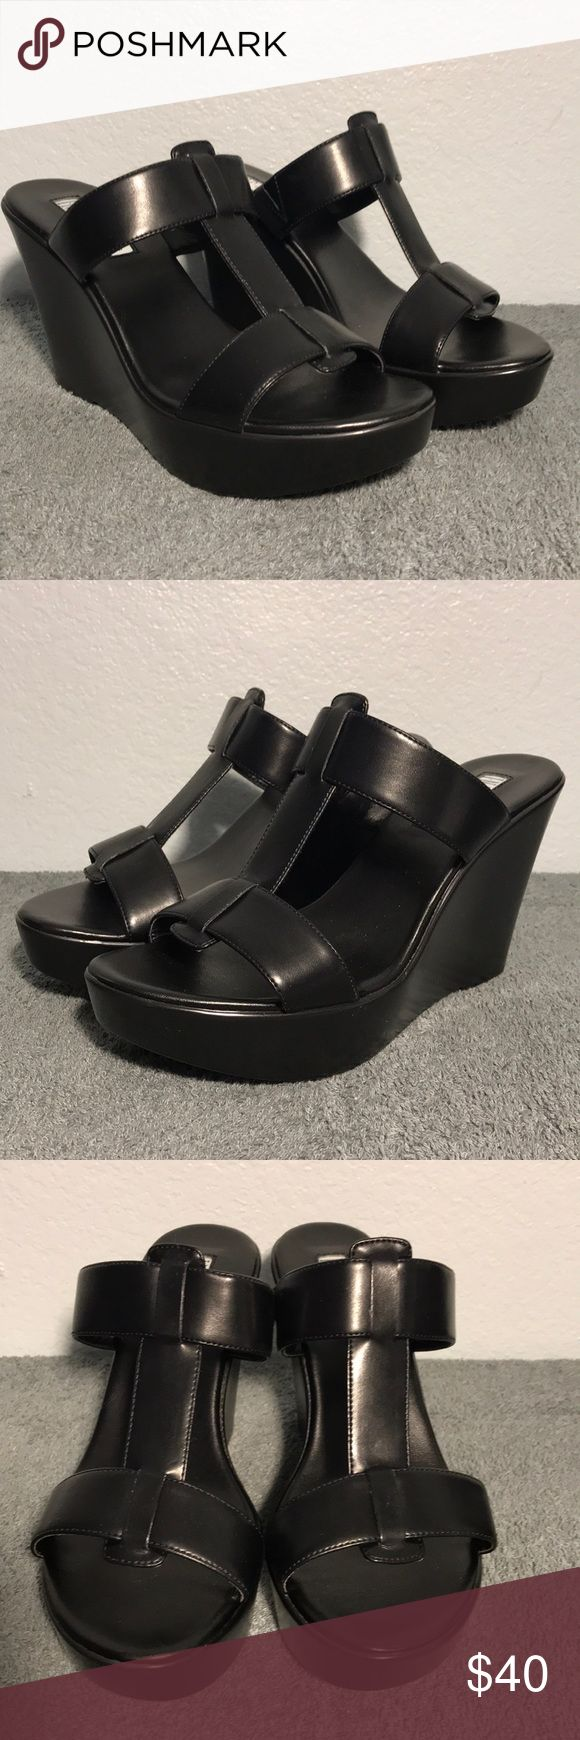 "INC Paciee Synthetic Black Wedge Sandal New in Box. 4.5"" heel. The INC International Concepts Paciee Sandals feature a Synthetic upper. The Man-Made outsole lends lasting traction and wear. INC International Concepts Shoes Wedges"